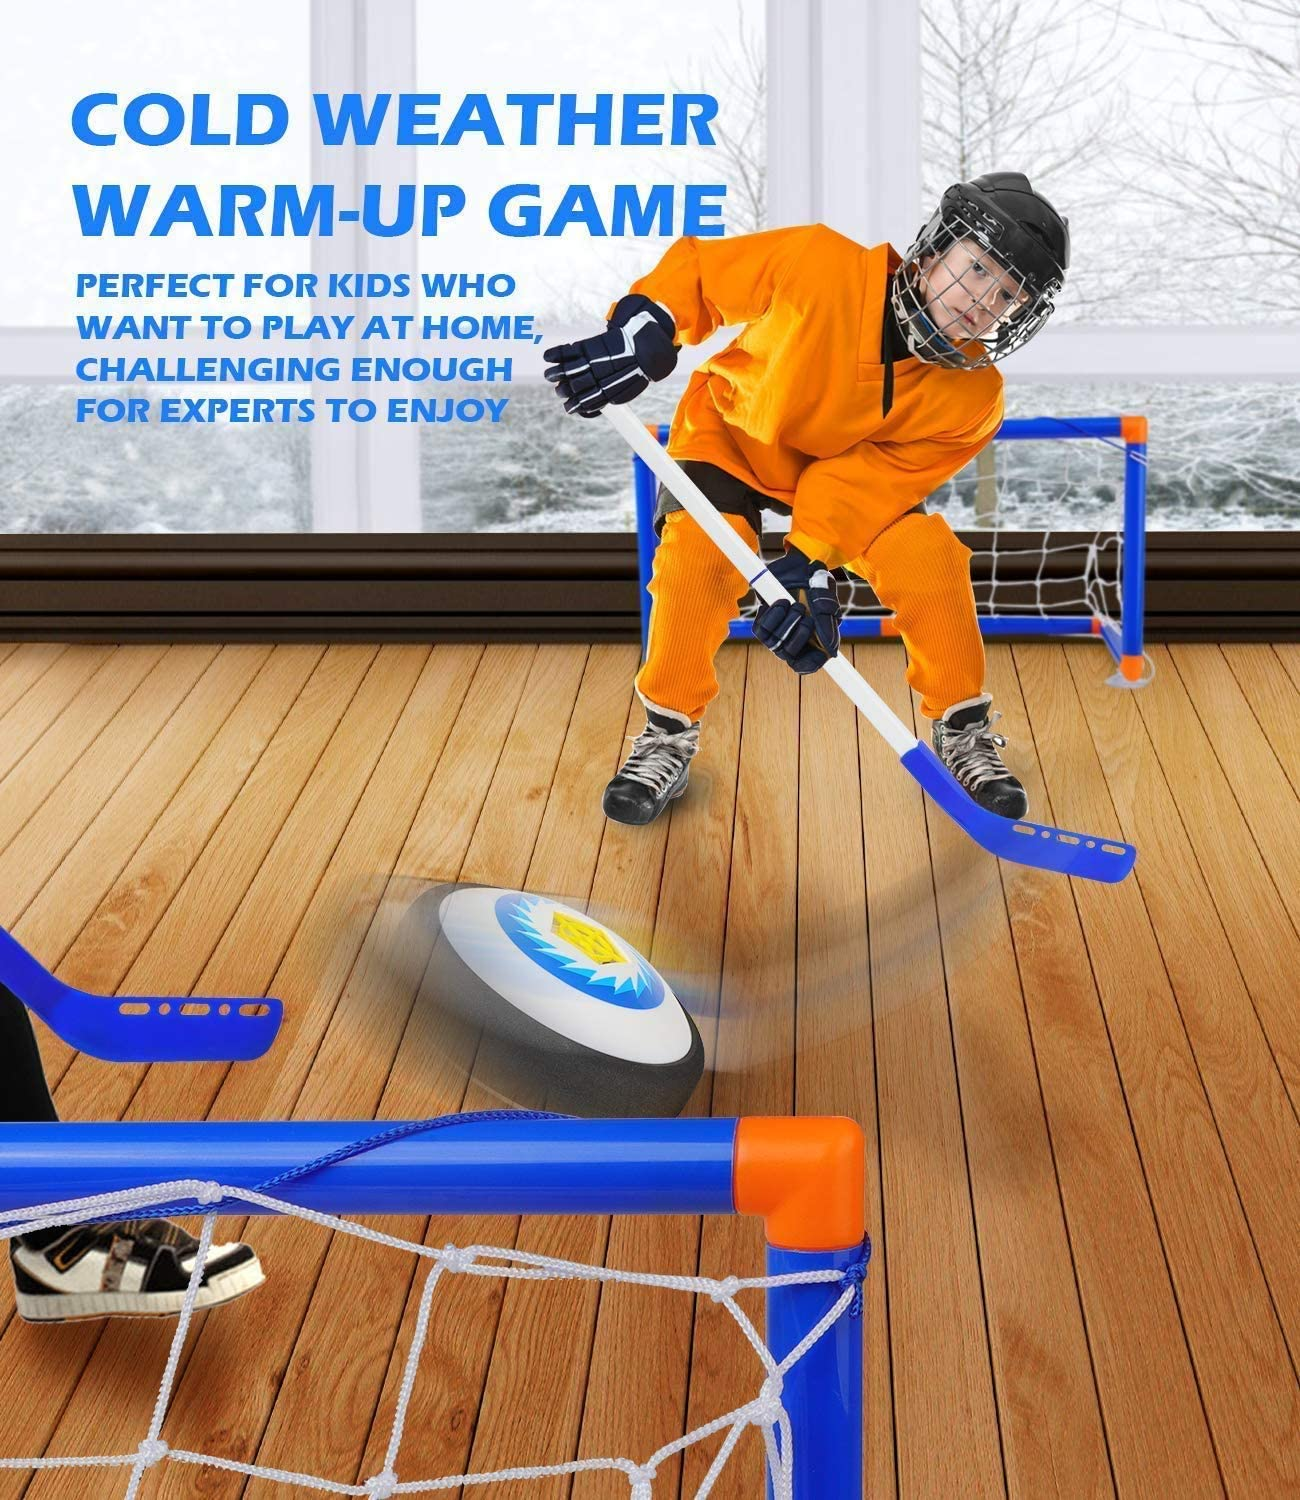 Indoor Sport Ball Games Best Birthday Gifts for Boys Girls Toddlers for 3 4 5 6 7 8 9 10 11 12 Years Old Kids Hockey Hover Ball Set Hover Soccer Ball Set with 2 Goals Air Soccer with LED Light